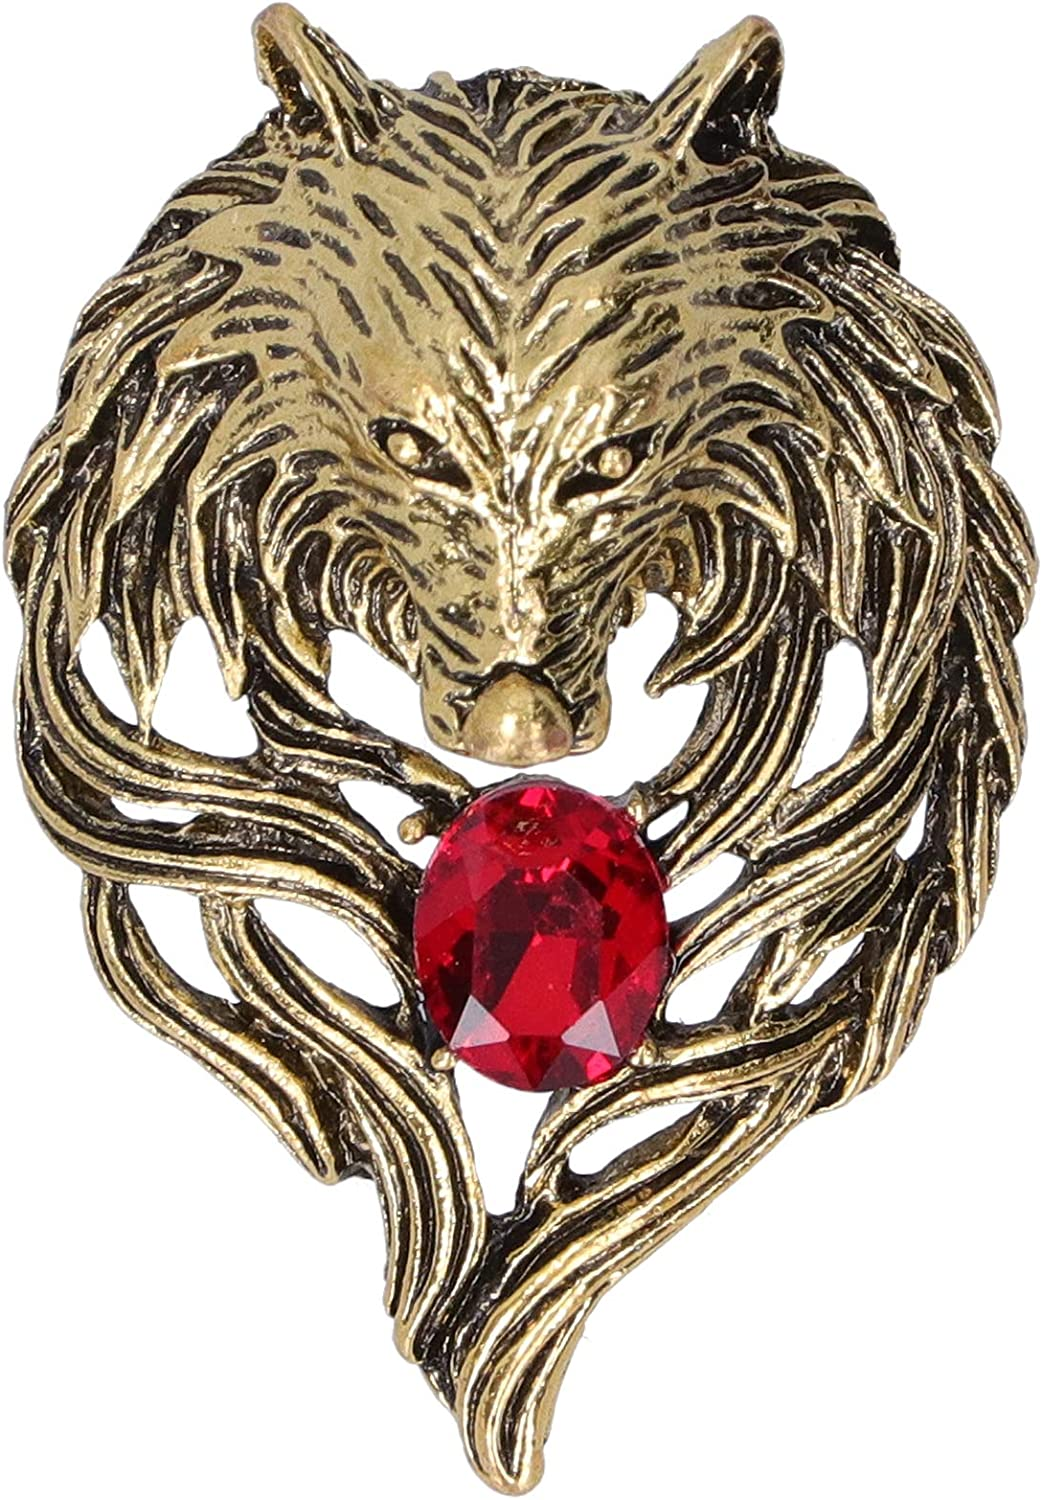 Brooch Head Lion Head Lapel Pin Jewelry for Women Men Animal Brooches for Gift Party Girlfriend,Painted